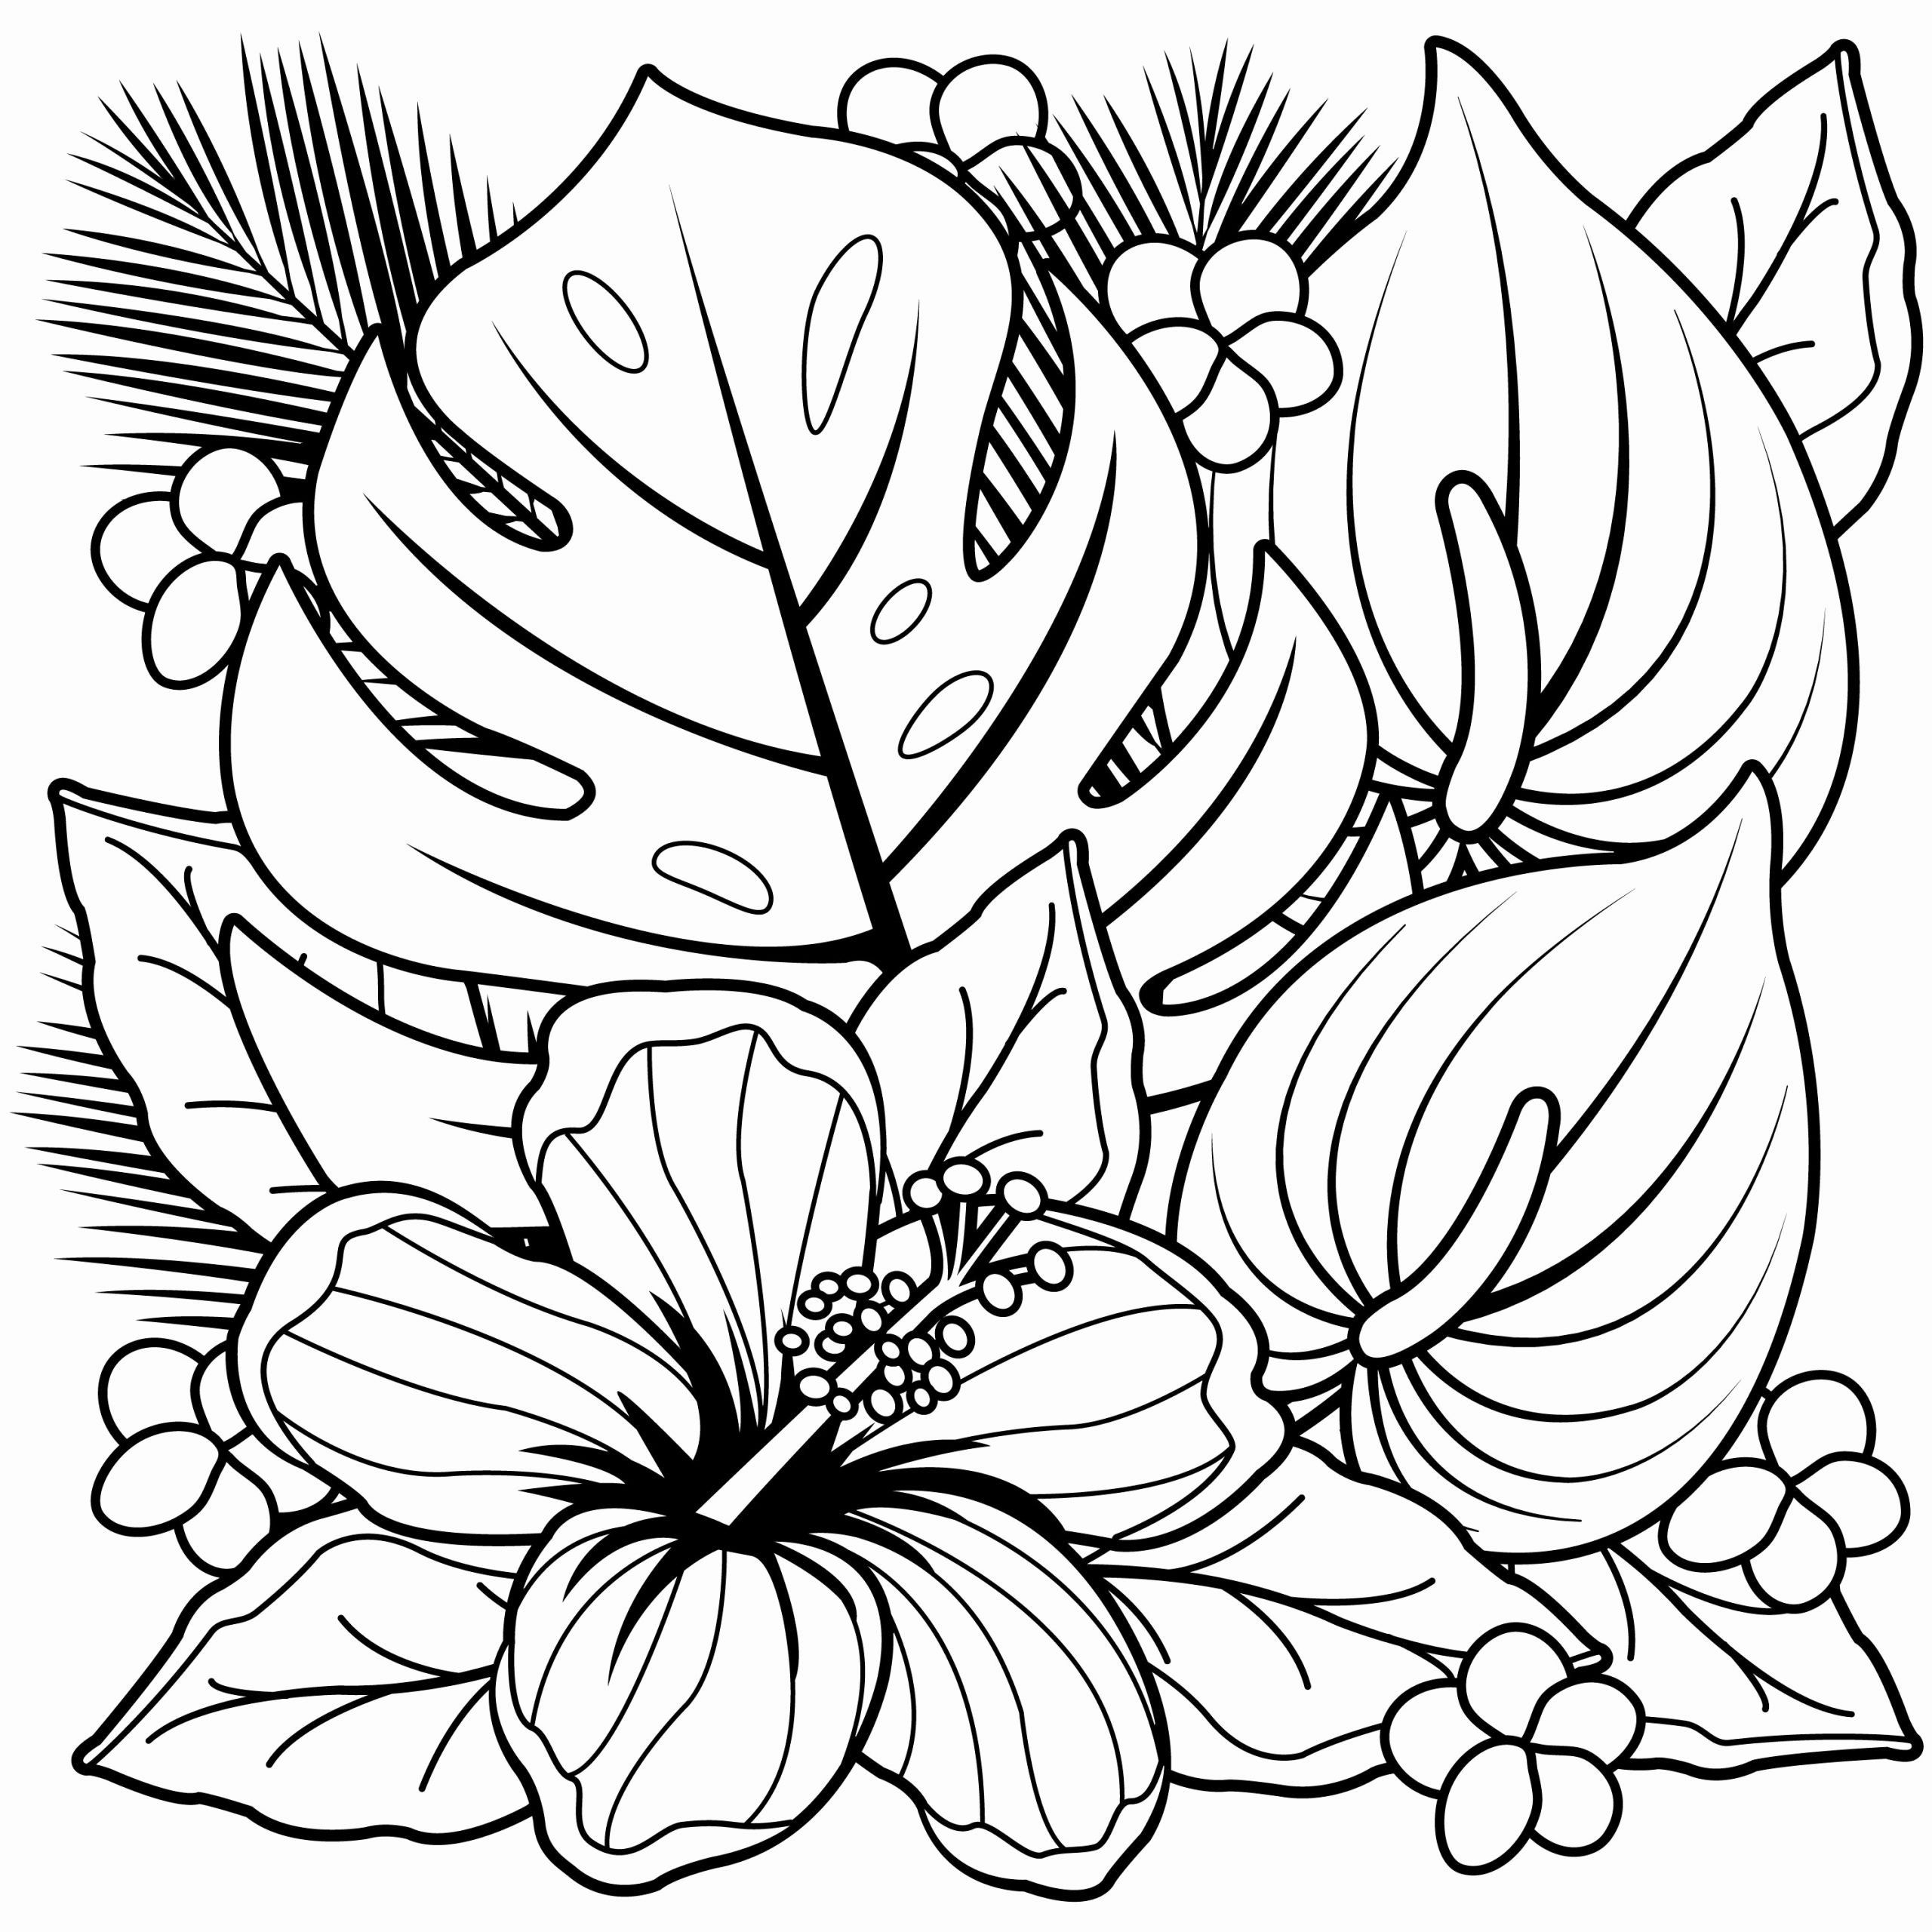 Hawaiian Flower Coloring Page Unique Coloring Pages Hawaiian Flowers Collection Printable Flower Coloring Pages Flower Coloring Sheets Free Coloring Pages